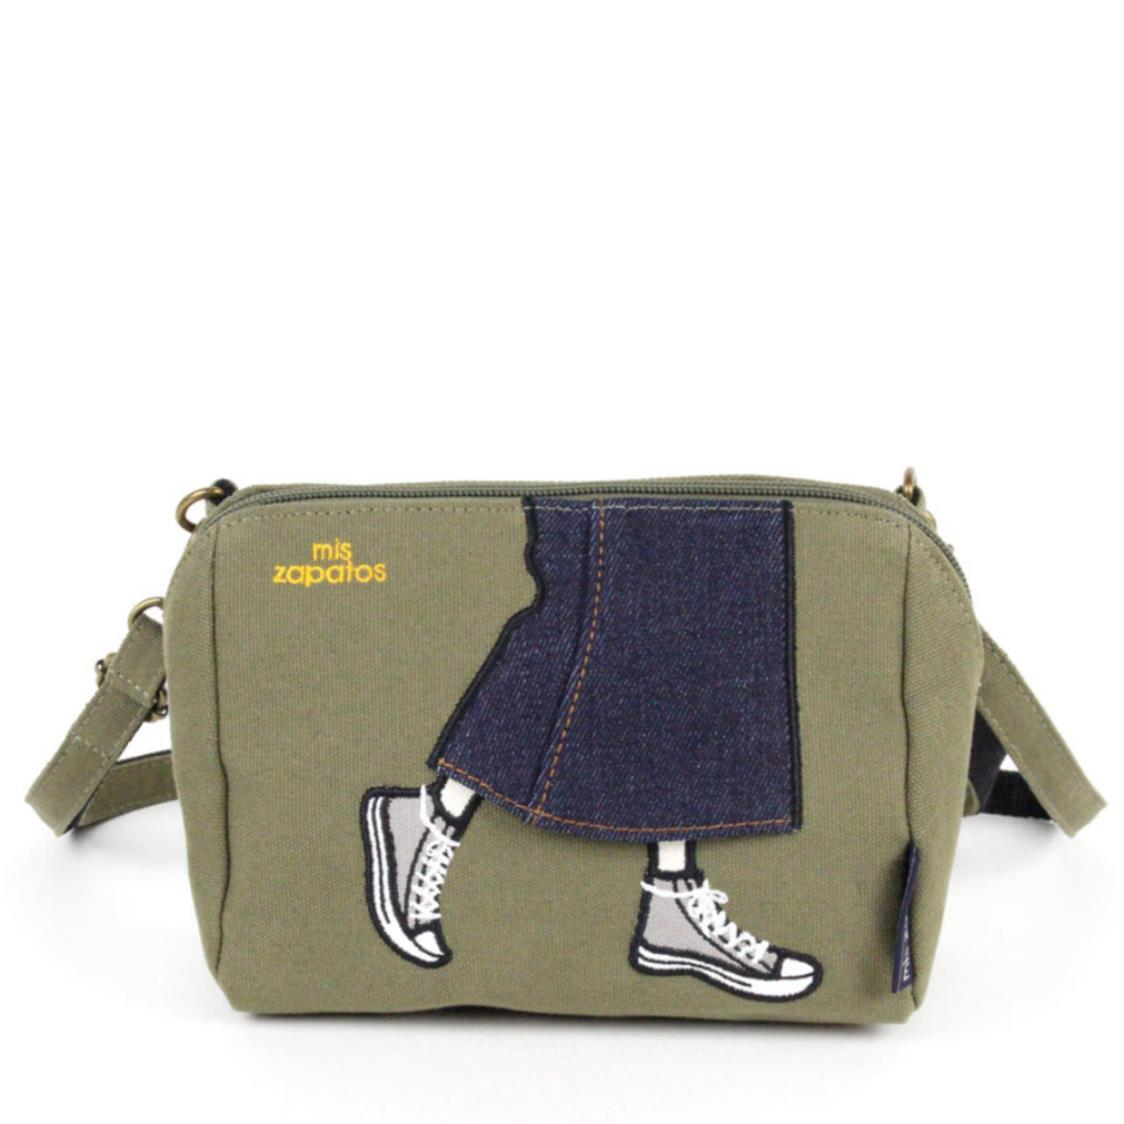 2-Way Use Jeans Skirt with Sneakers Slingbag Khaki